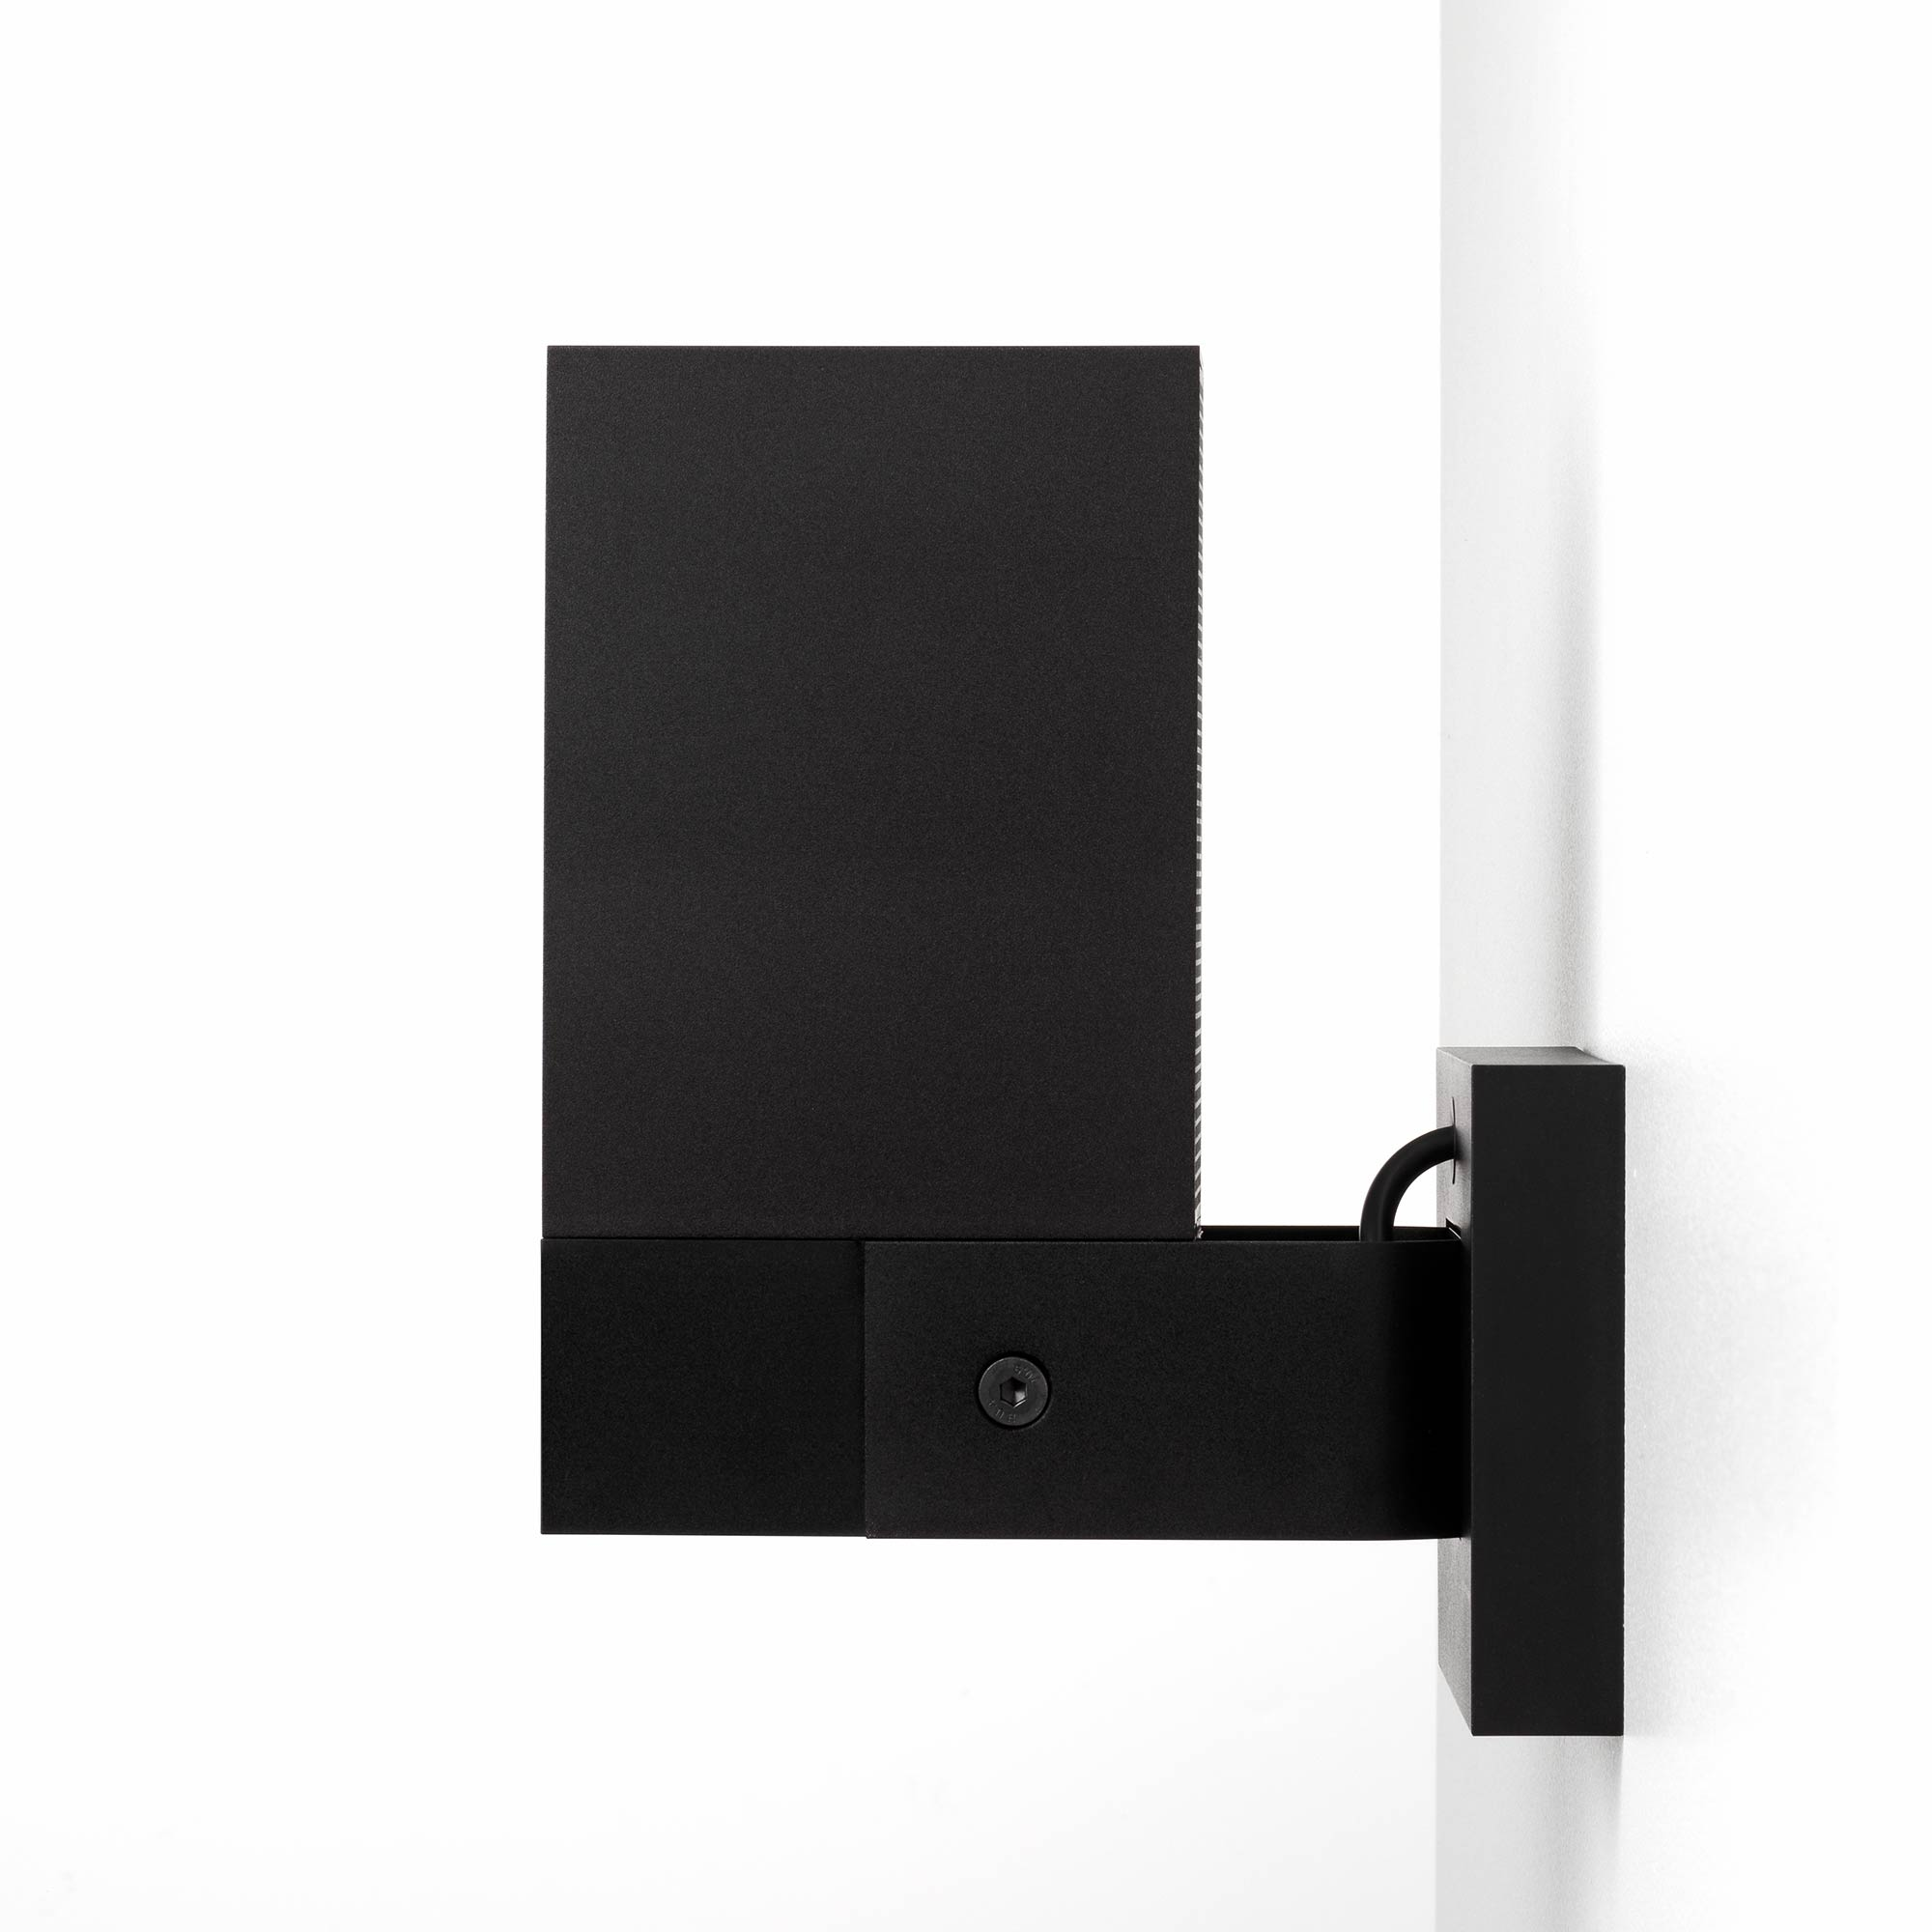 netatmo noc01 eu netatmo noc01 eu presence outdoor security camera. Black Bedroom Furniture Sets. Home Design Ideas